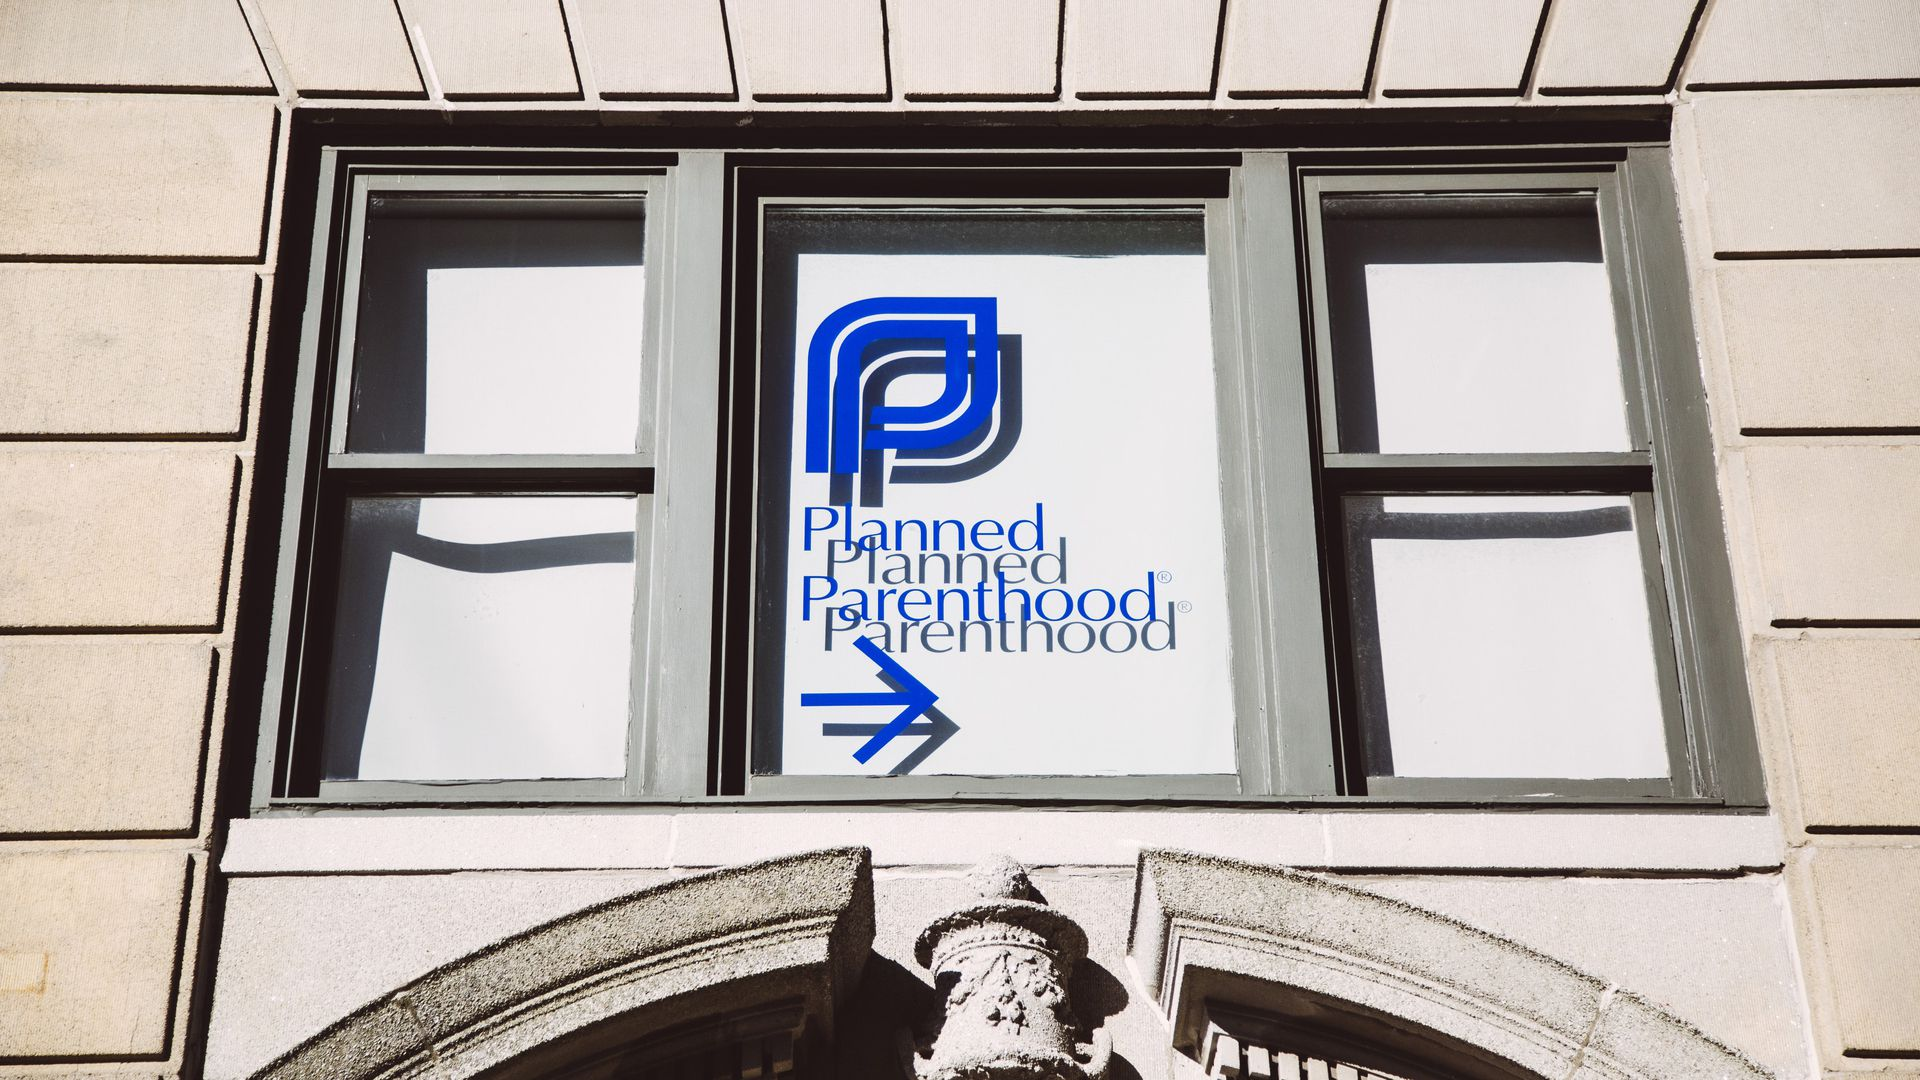 In this image, the Planned Parenthood logo is seen in a window